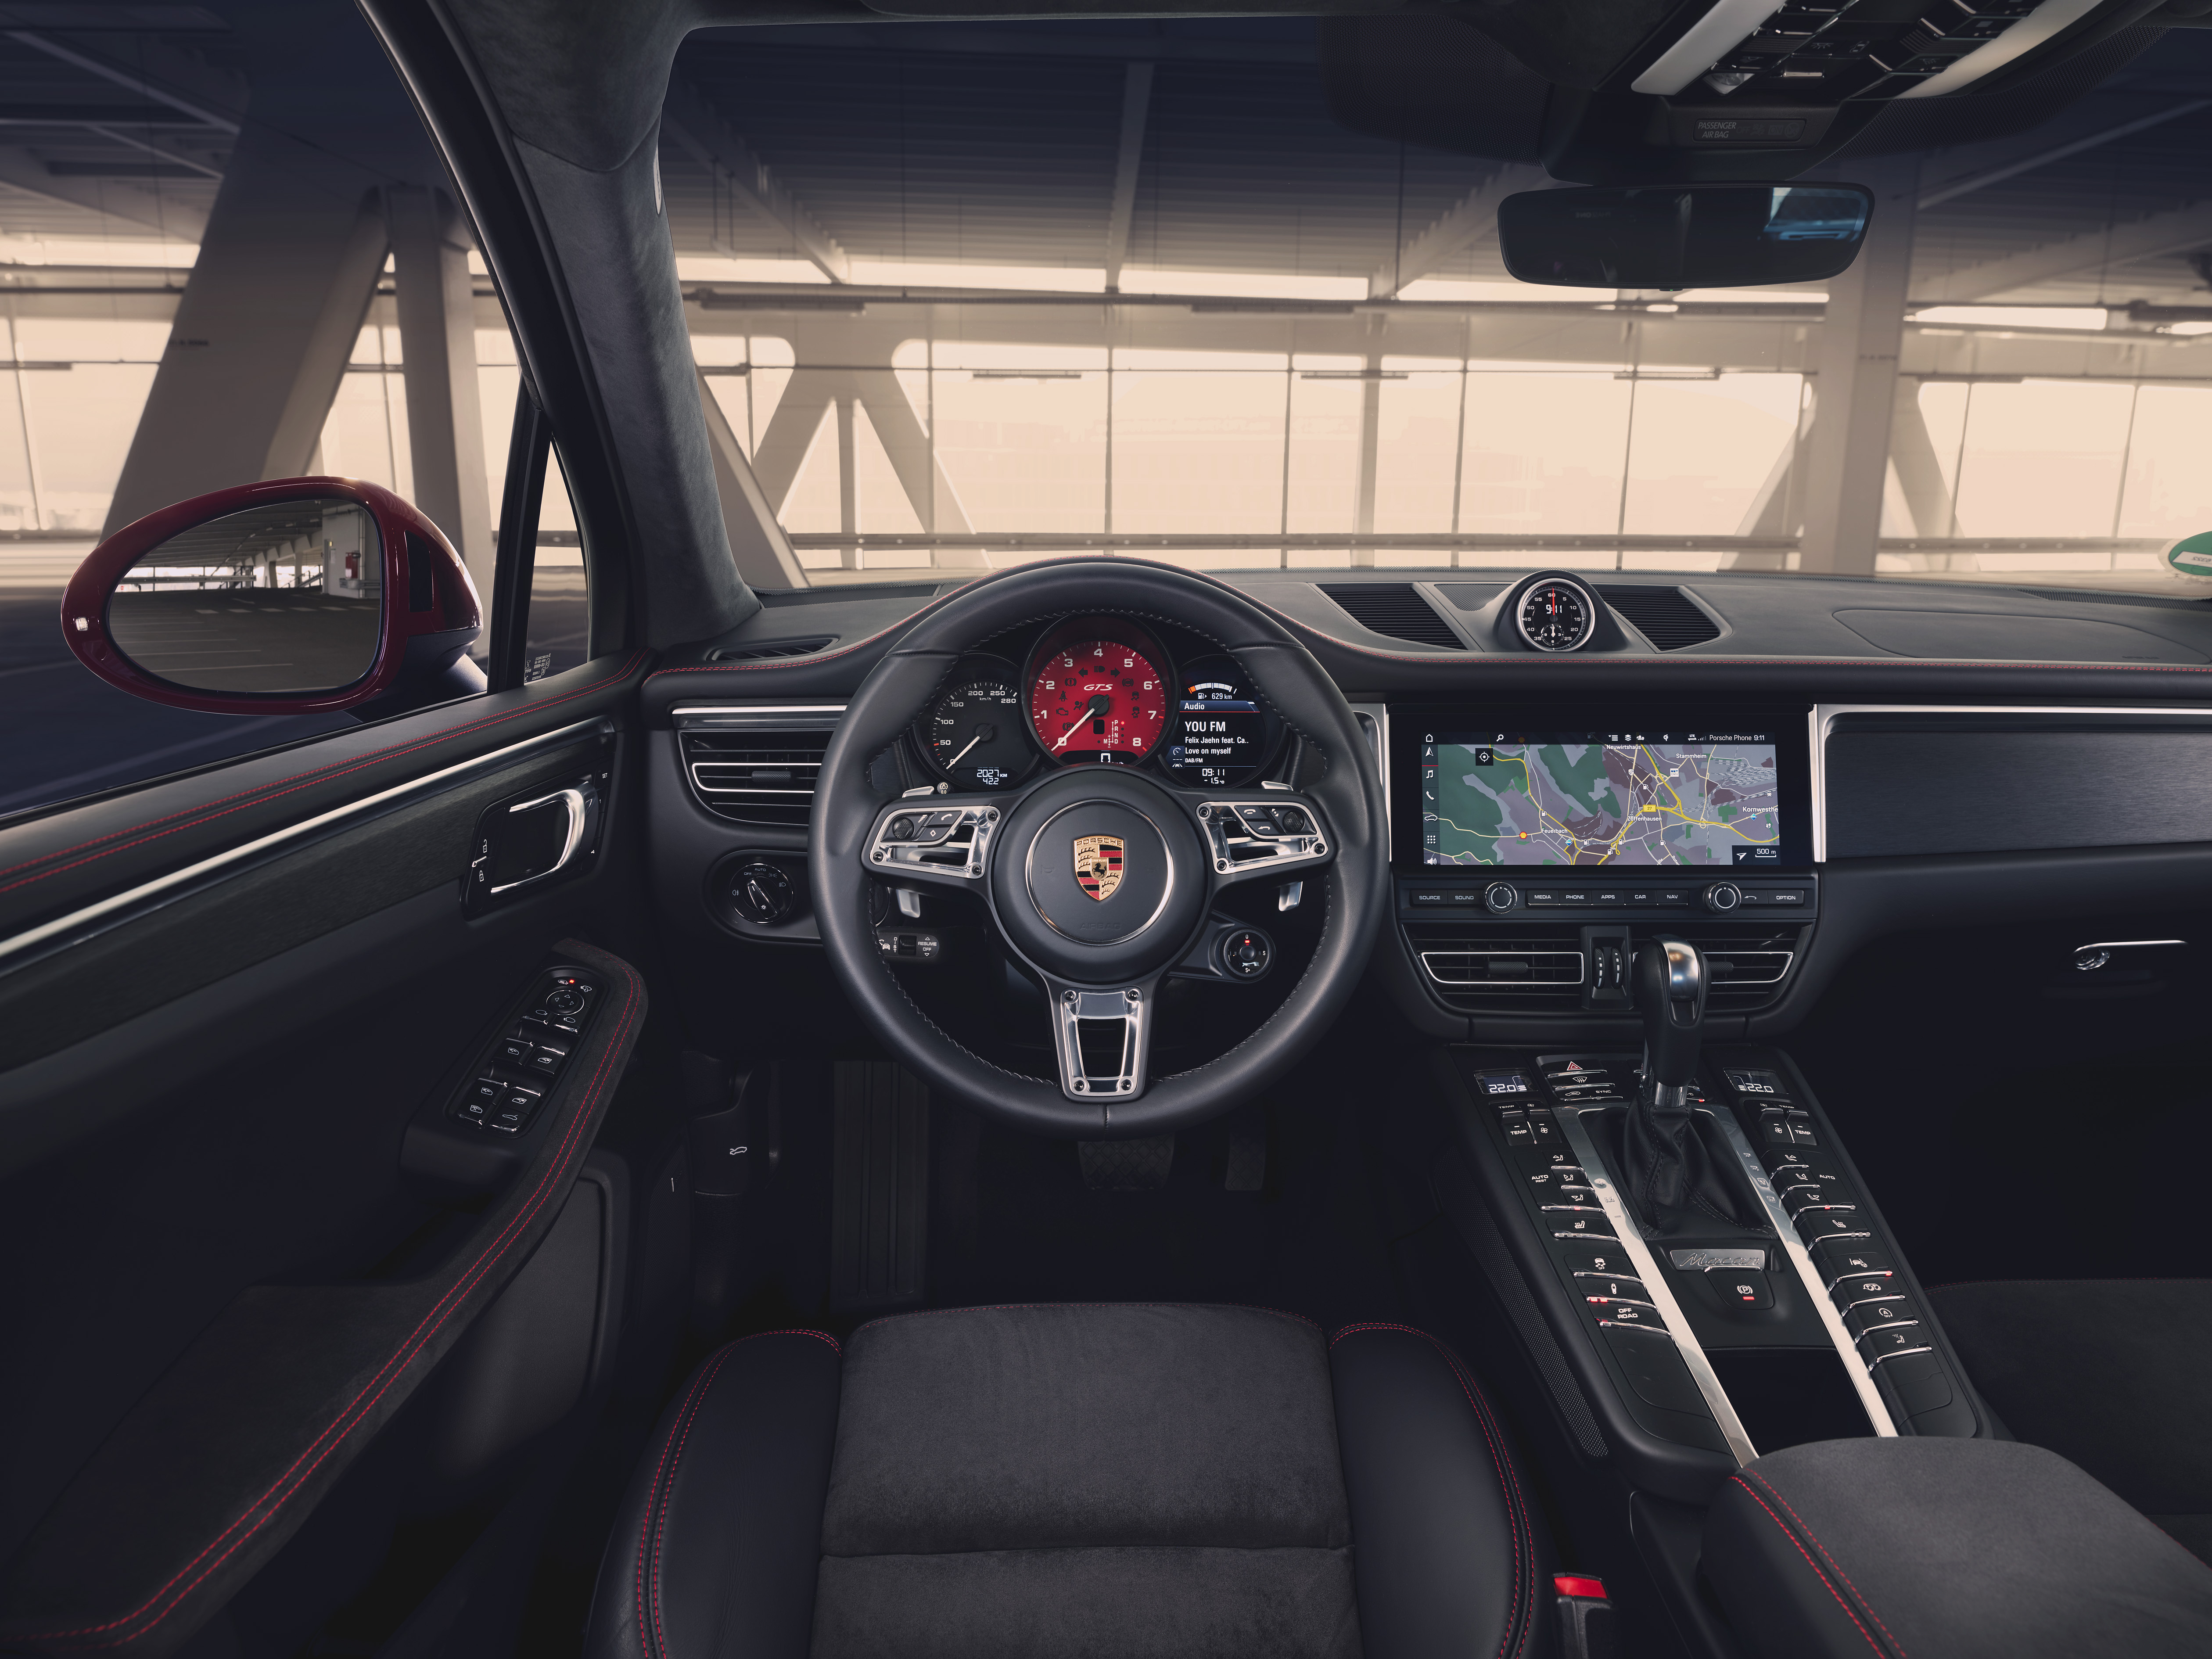 Alcantara has been used on a variety of the interior components